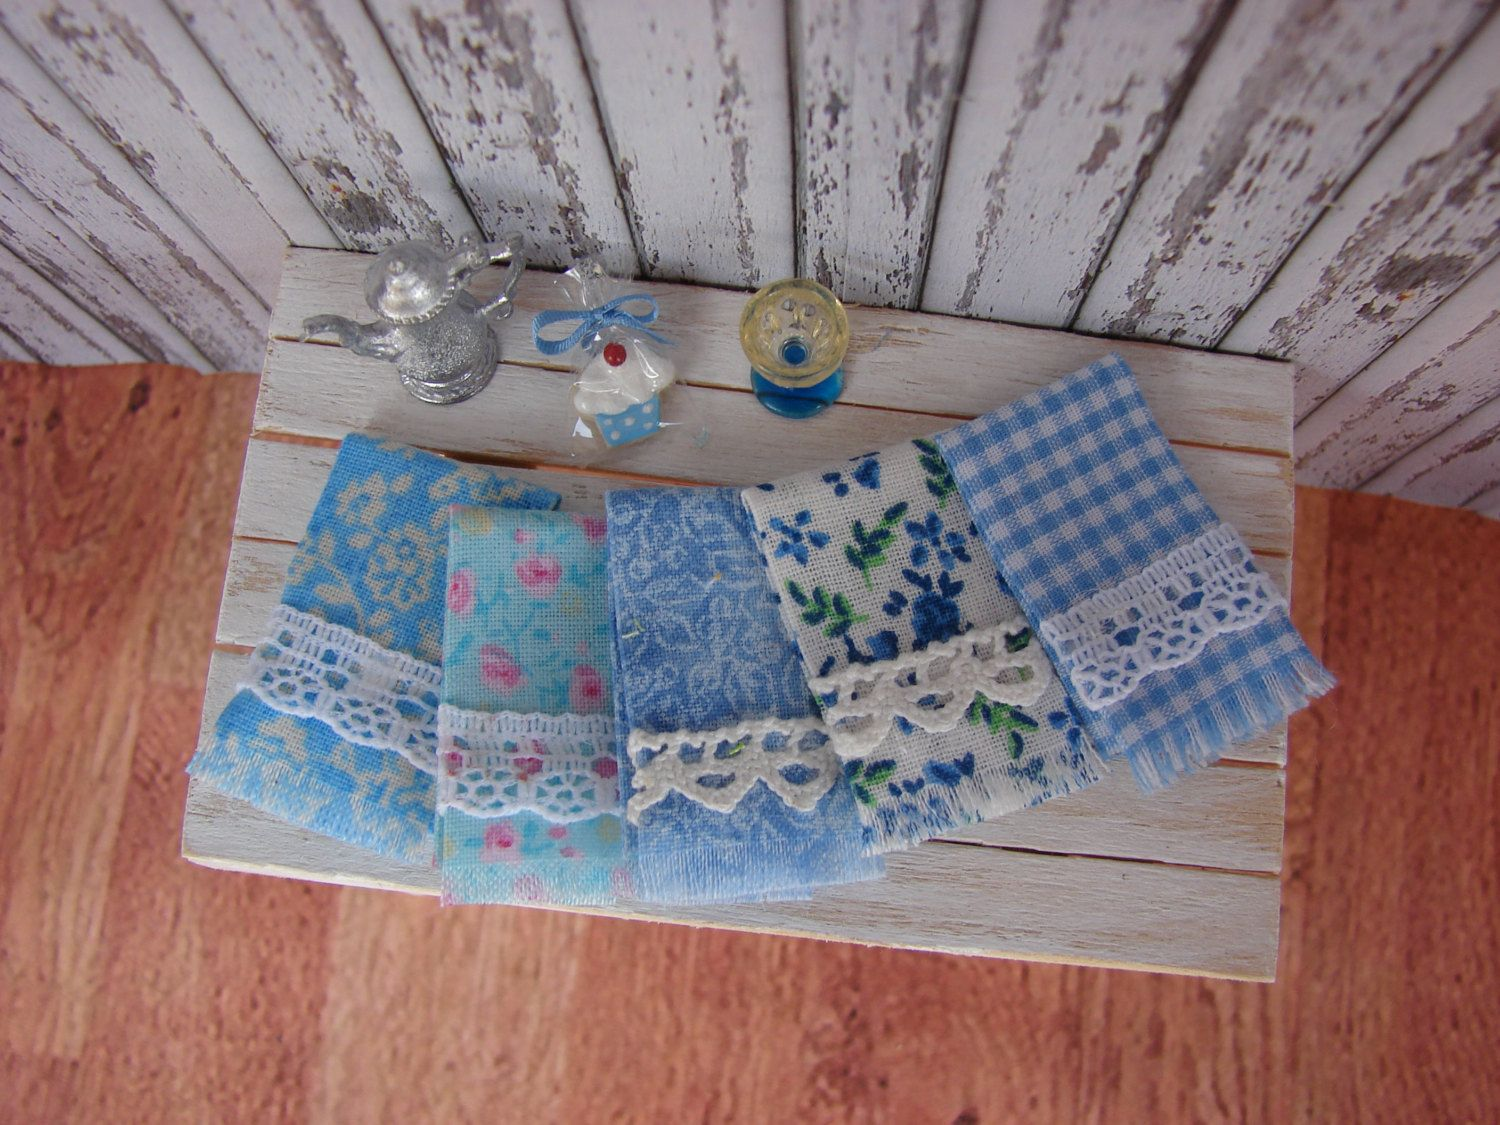 Dollhouse Miniature Shabby Chic Kitchen Fringed Tea Towels Set Of 5 In Blue  And White And Lace Trims. $19.95, Via Etsy.